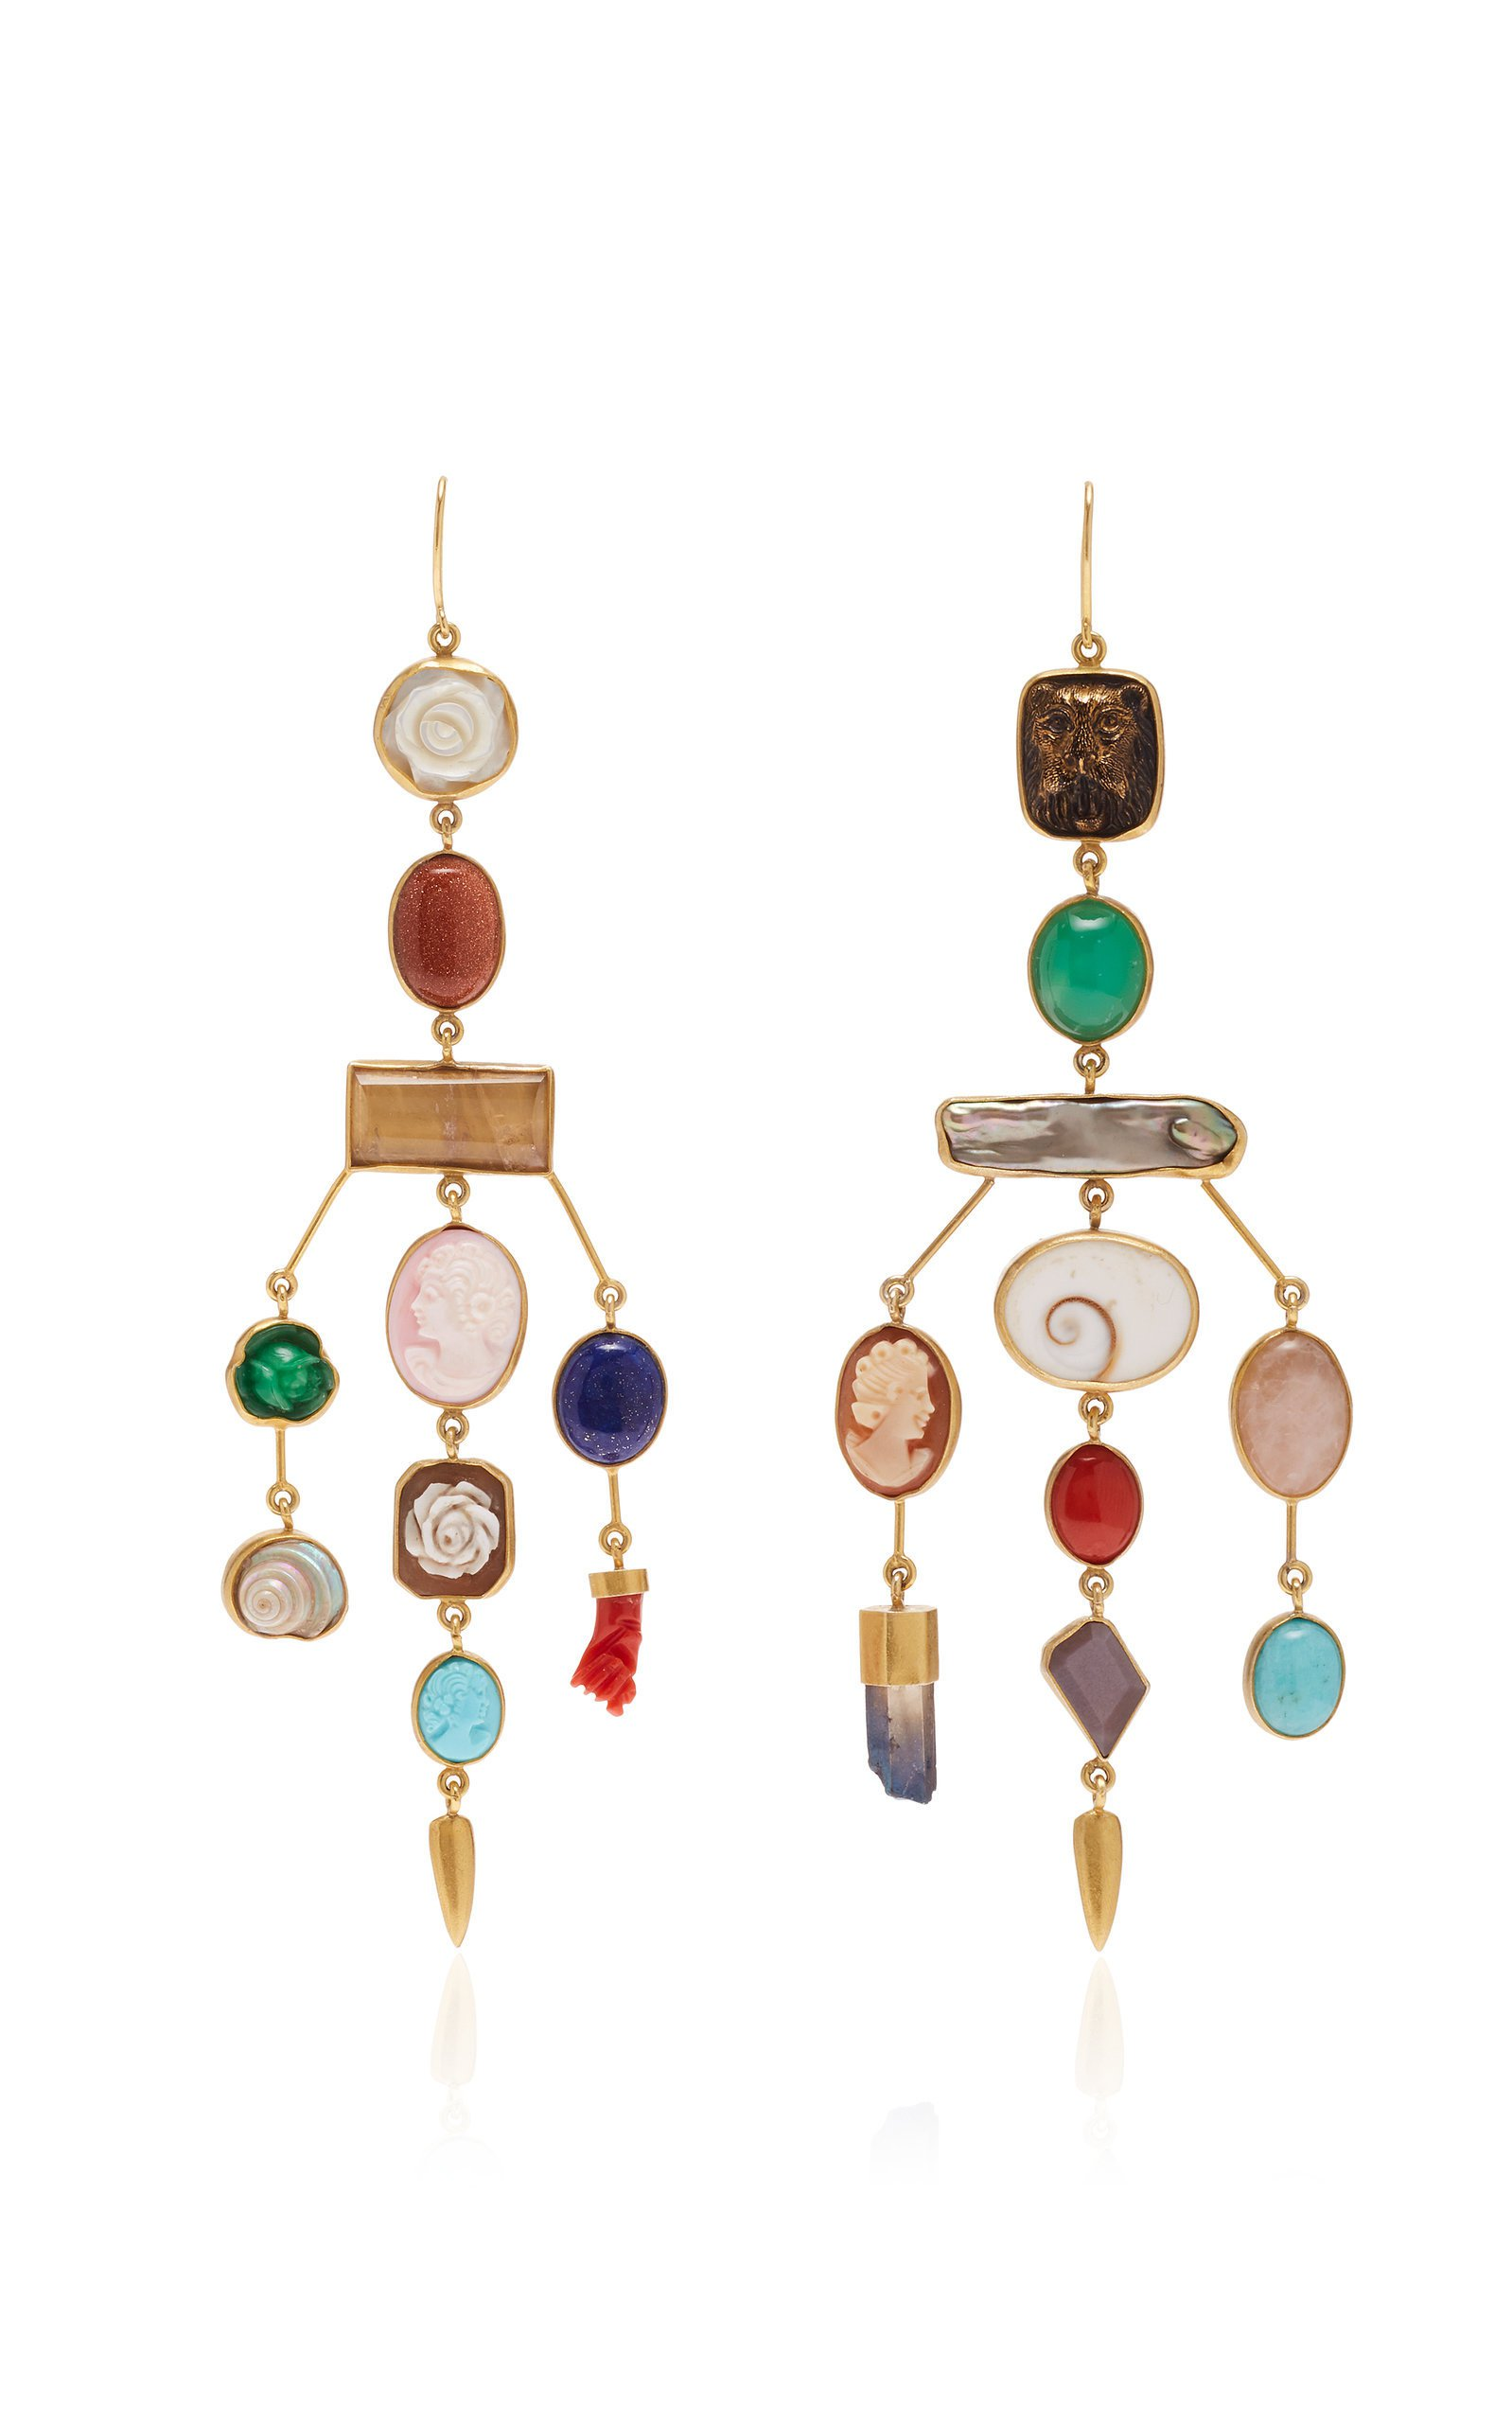 Grainne Morton Chandelier Charm Earrings